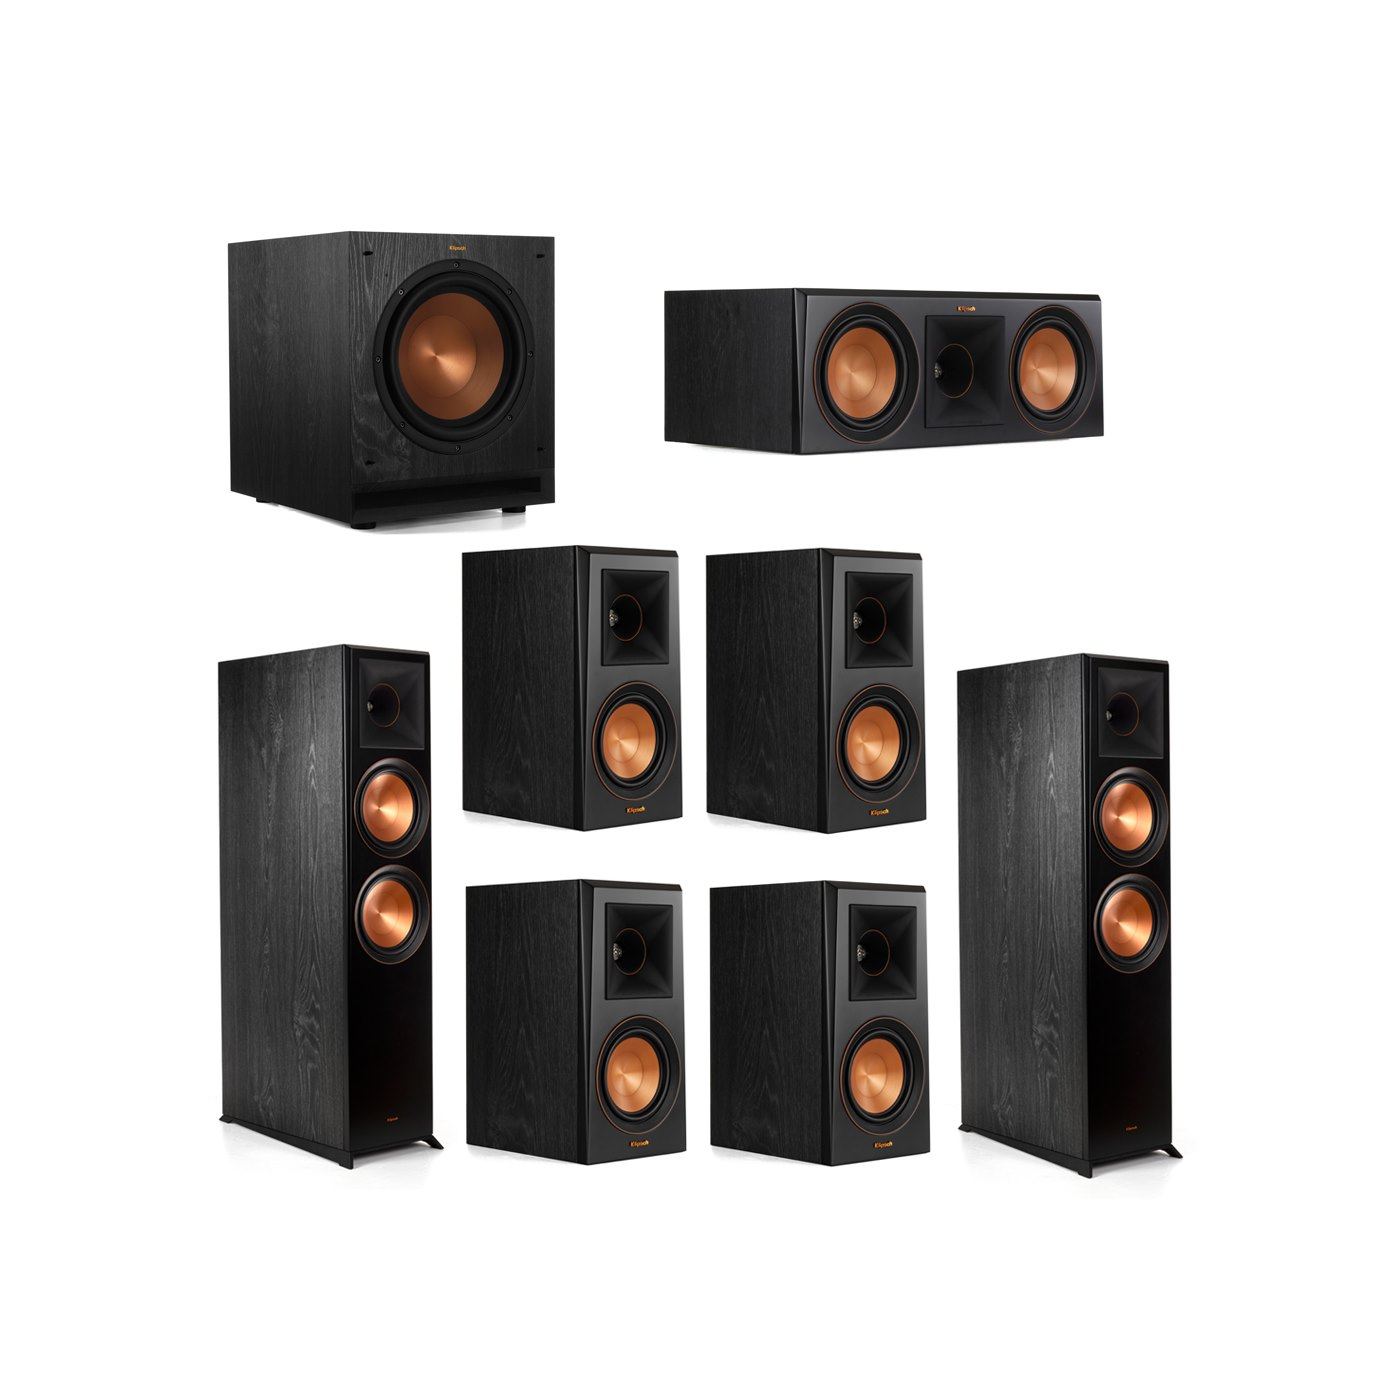 Klipsch 7.1.2 System - 2 RP-8060FA Dolby Atmos Speakers, 1 RP-600C, 4 RP-500M Speakers, 1 SPL-100